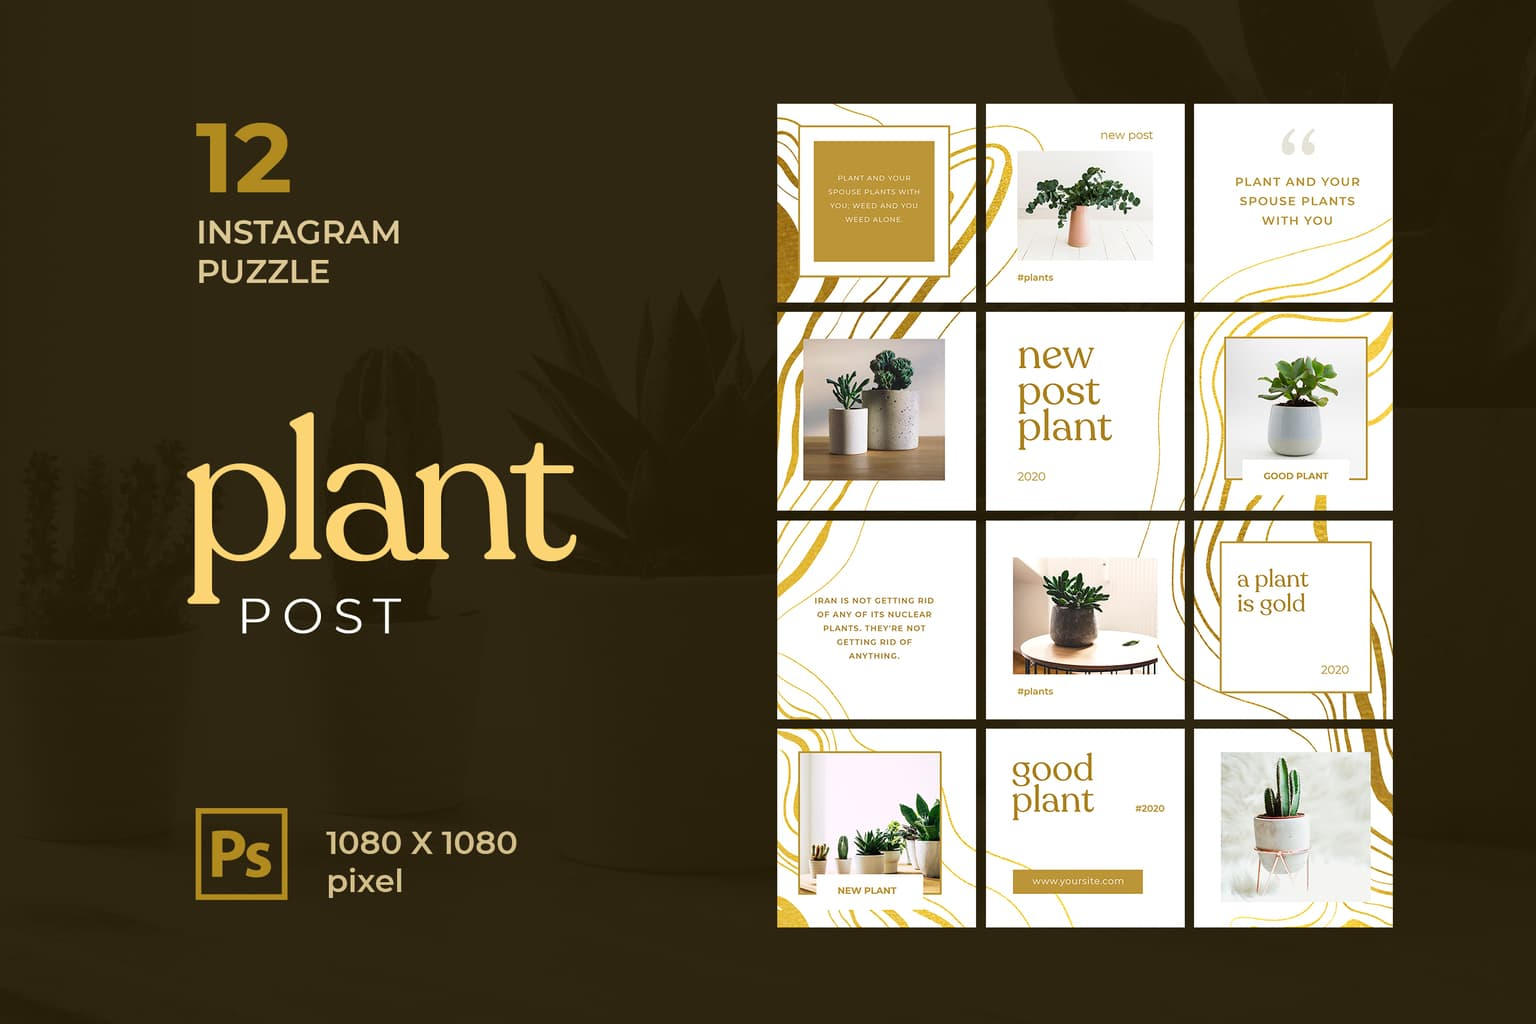 instagram puzzle – good plant